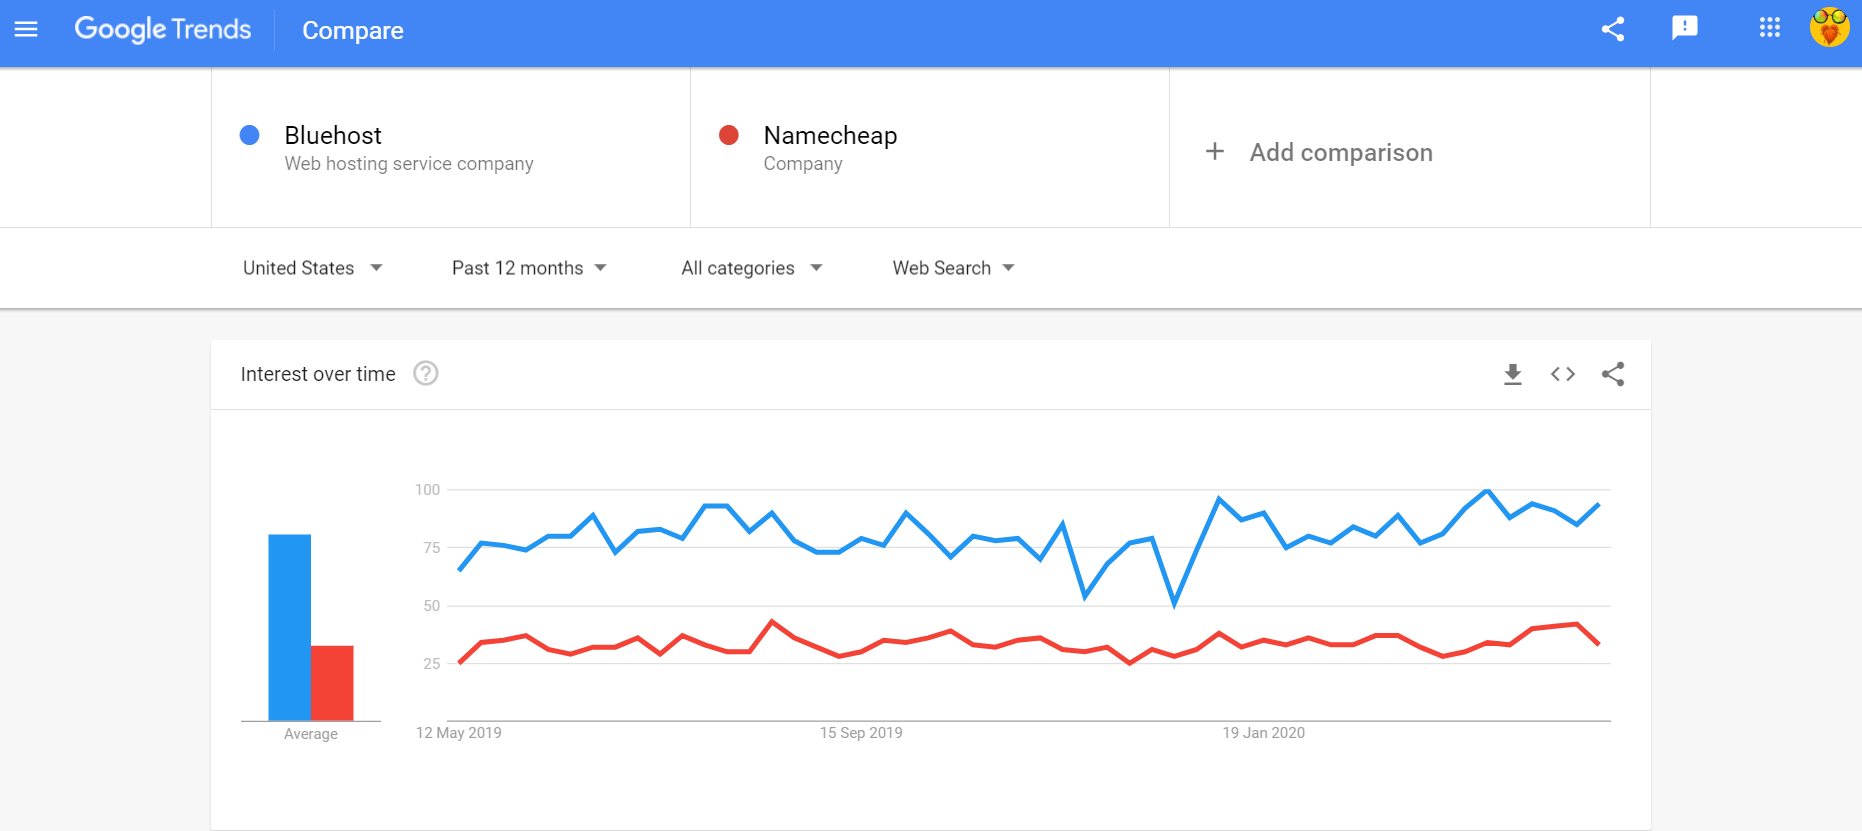 Google trends Bluehost vs Namecheap